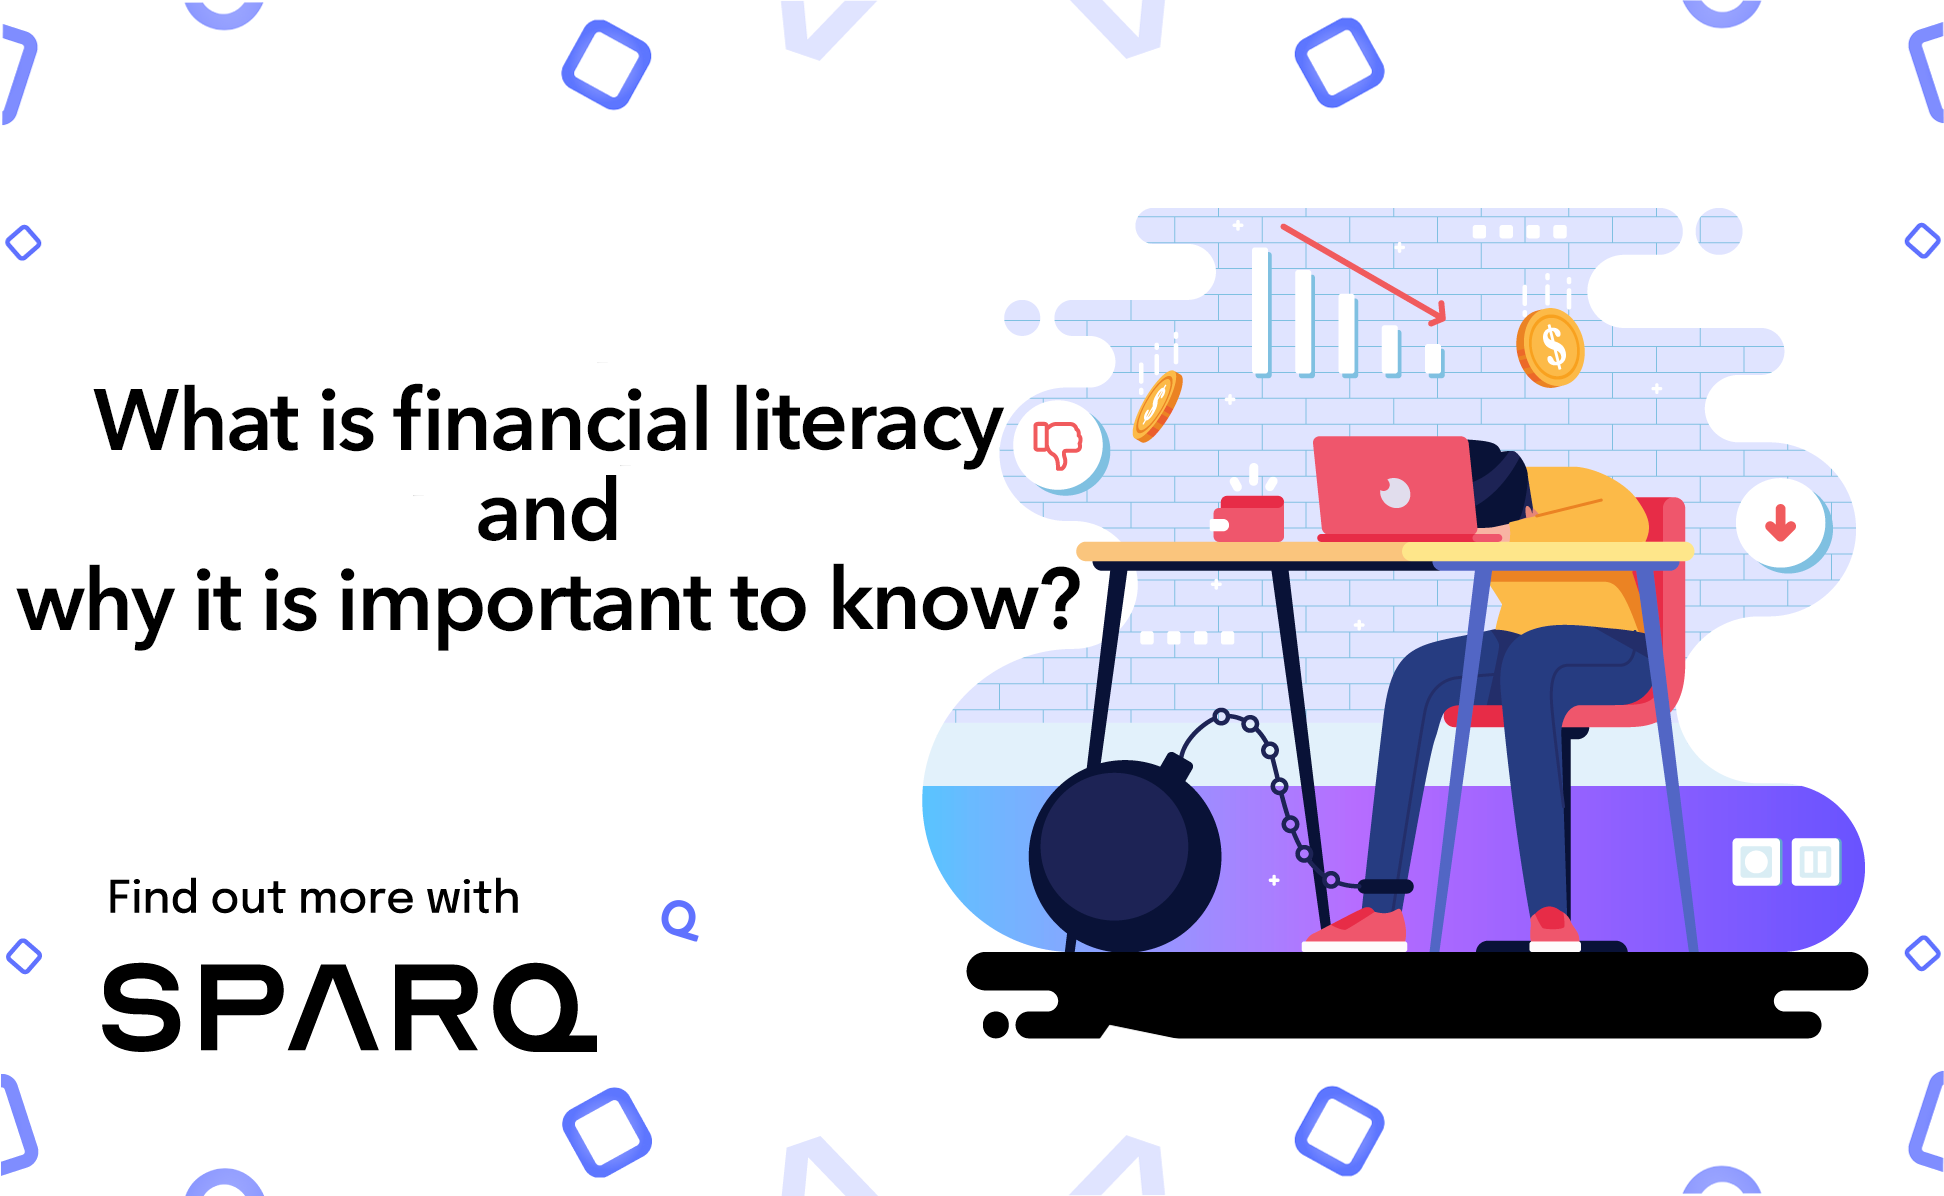 /what-is-financial-literacy-and-why-is-it-important-gf2u33hf feature image